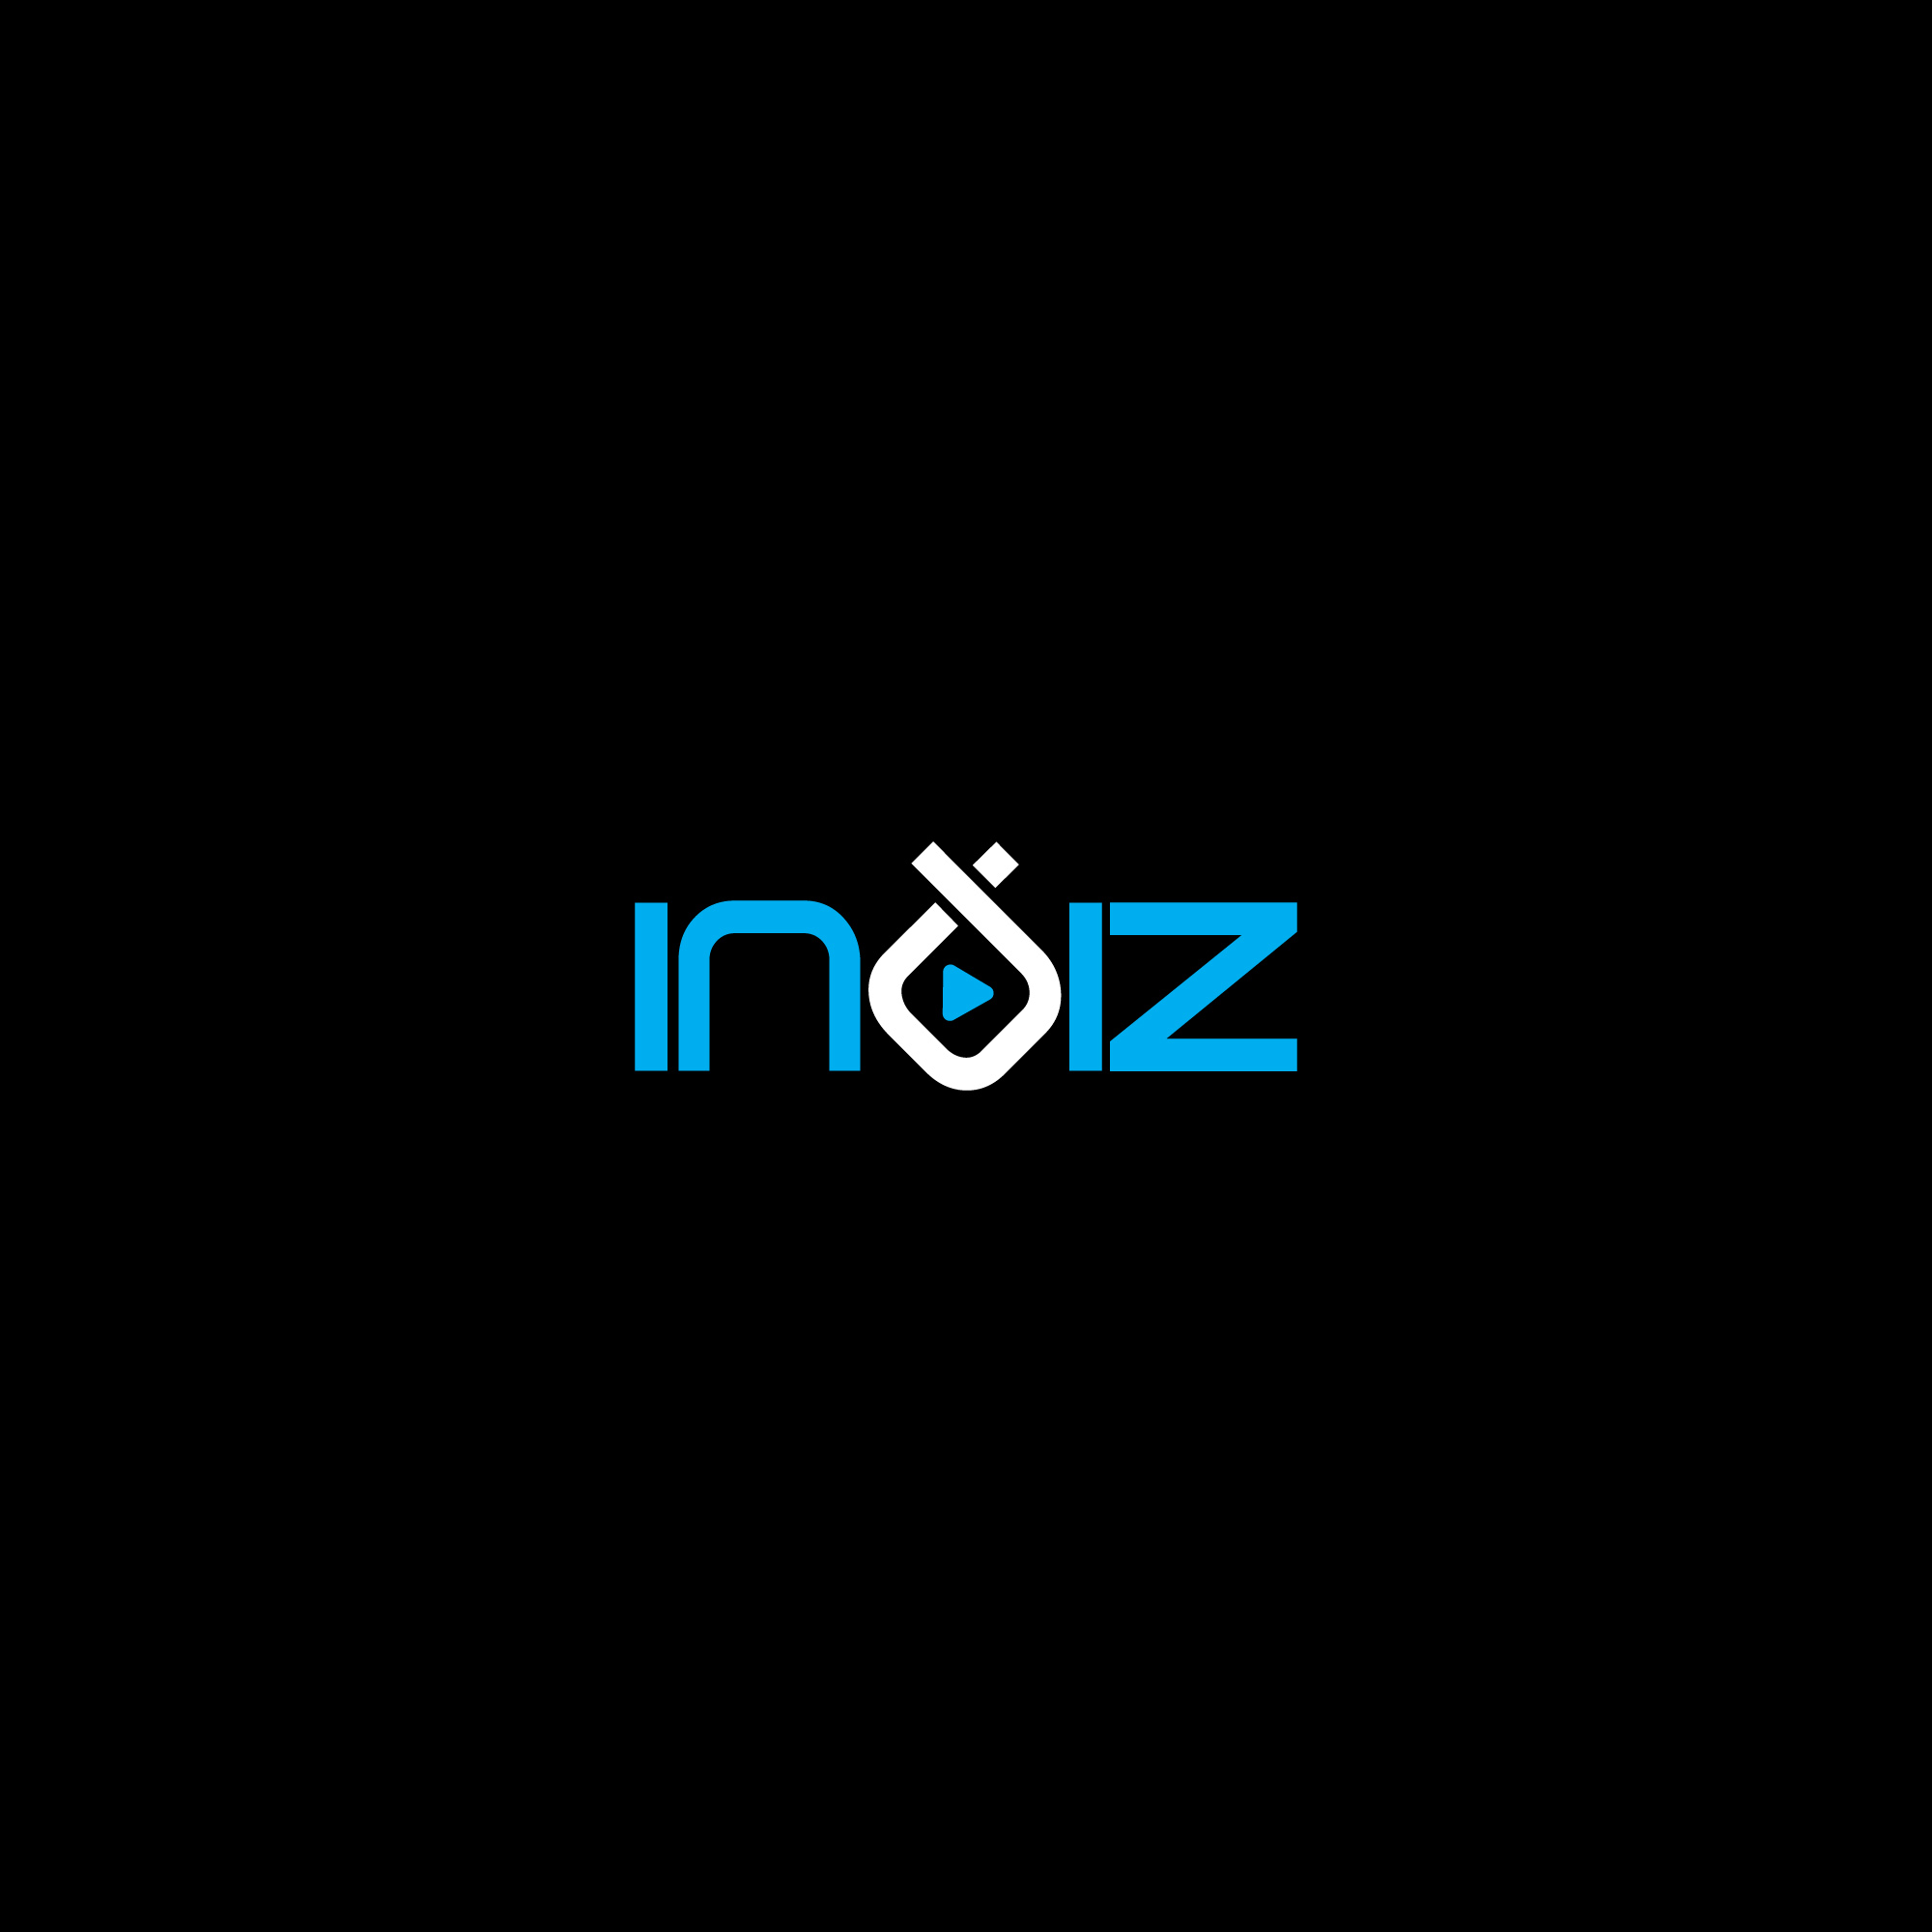 Logo Design by Mrs Suhartini - Entry No. 208 in the Logo Design Contest Fun Logo Design for Indiz.